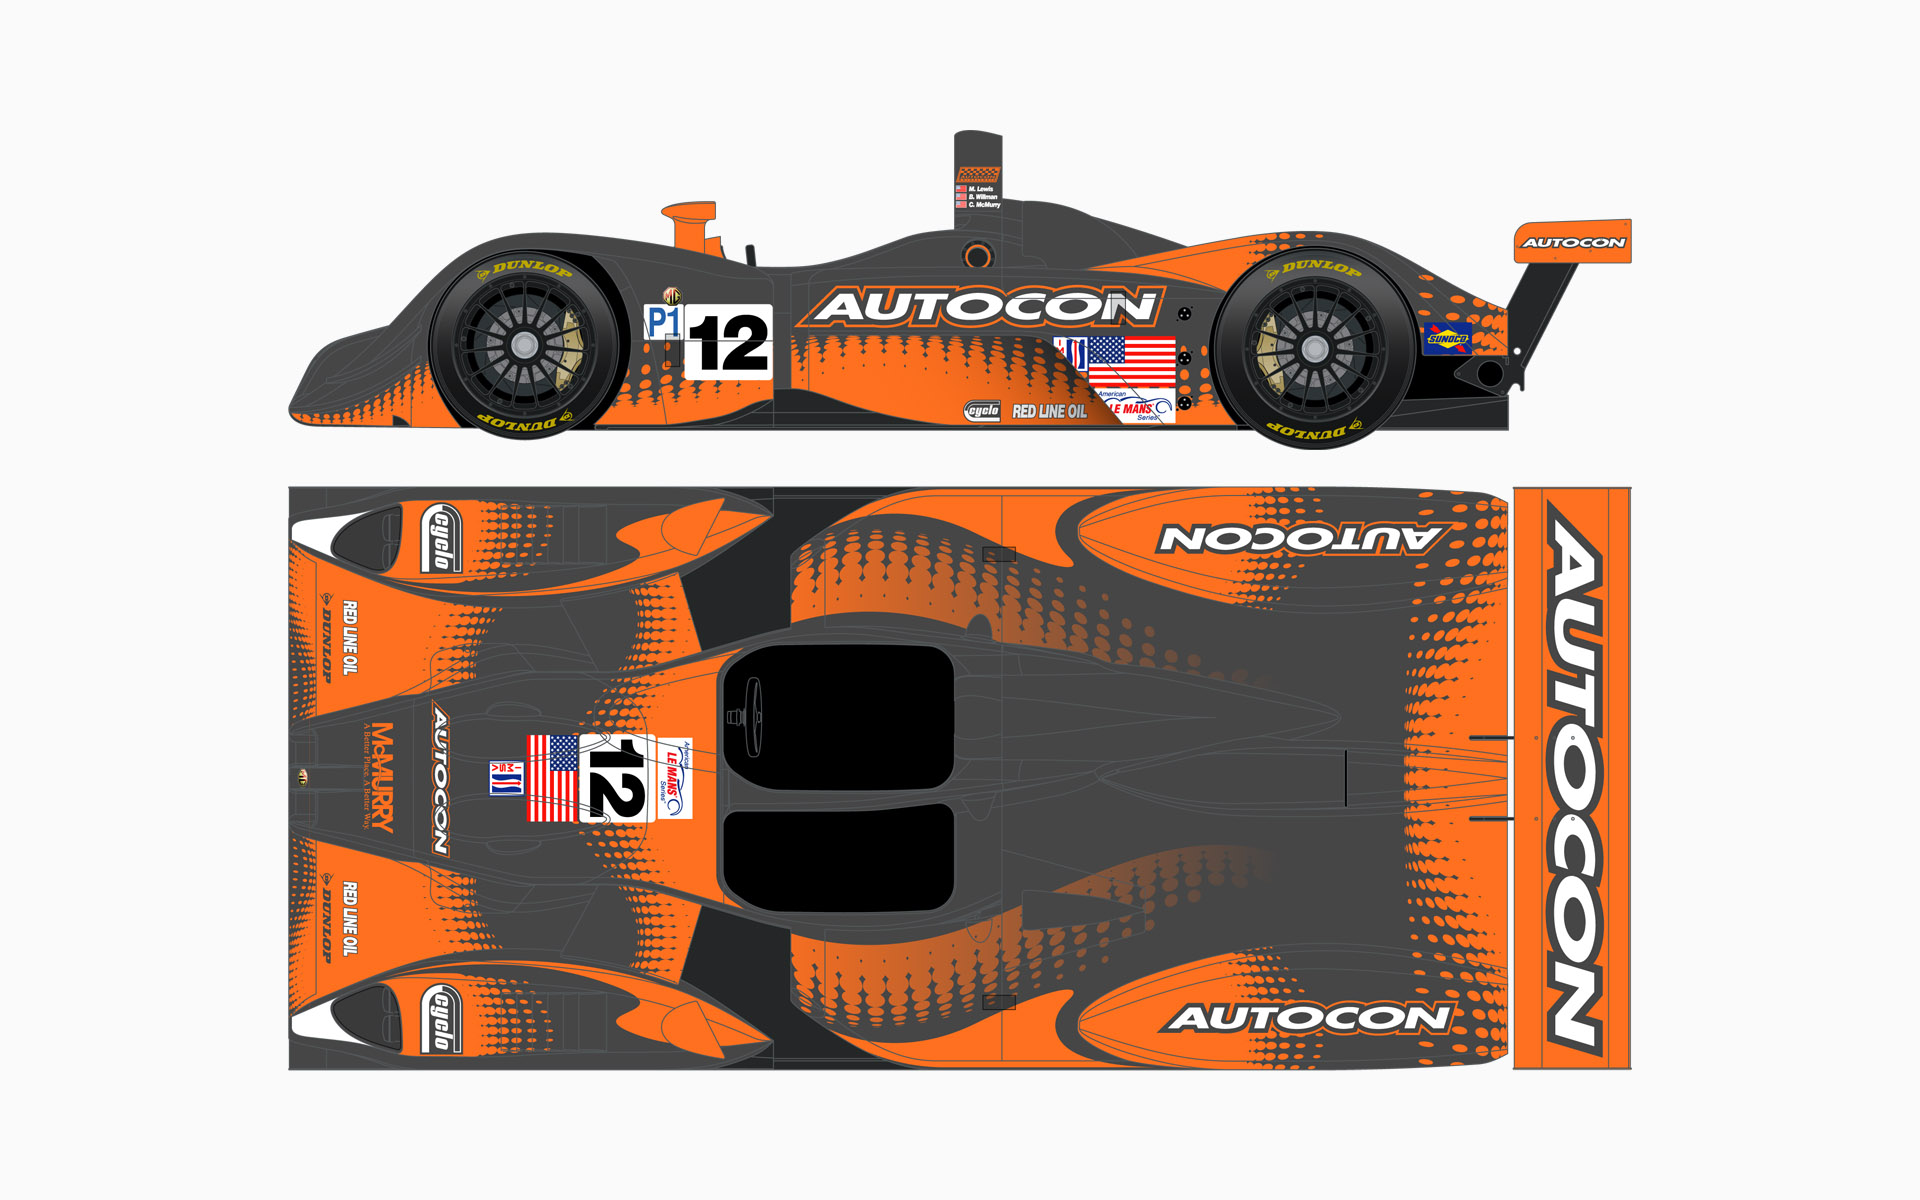 2006 Autocon Motorsports Lola EX257 Livery Elevations